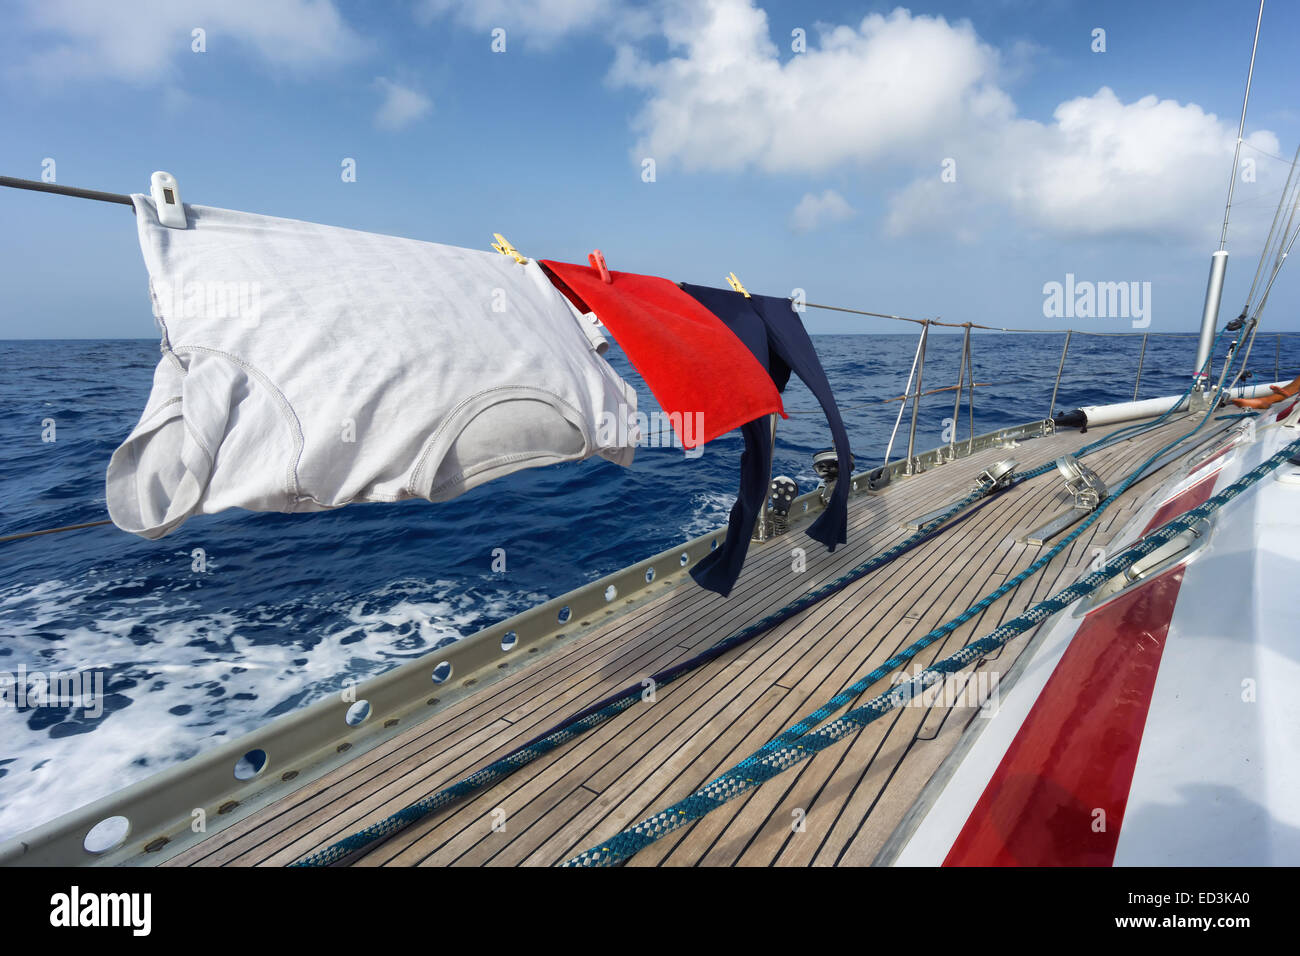 funny hanging clothes on the sail boat - Stock Image